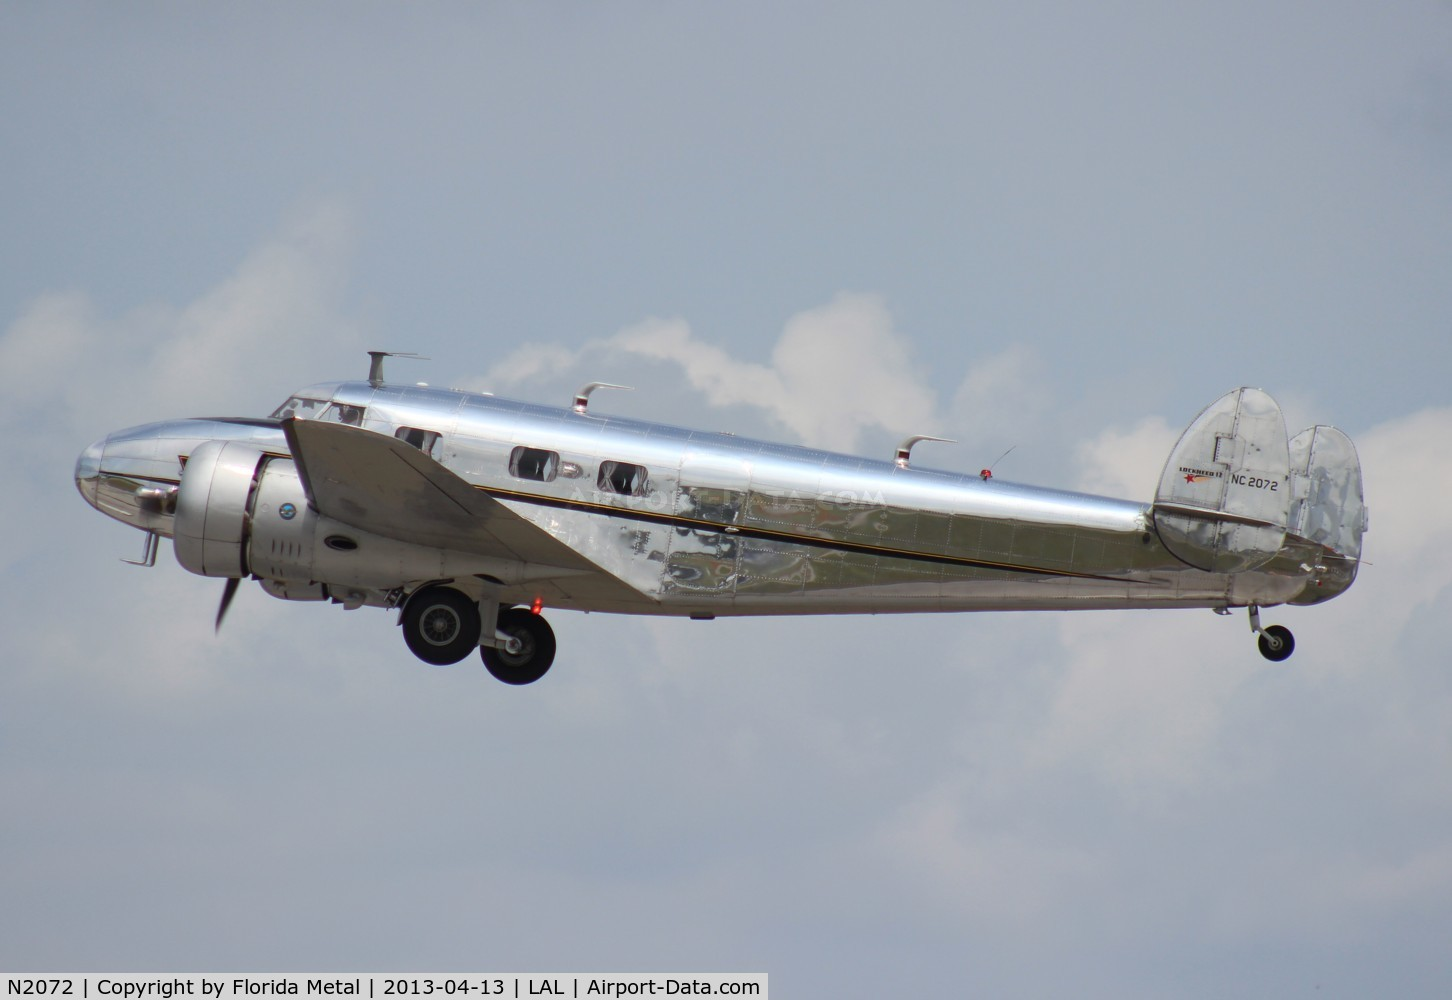 N2072, 1936 Lockheed 12A C/N 1208, Lockheed 12A leaving Sun N Fun 2013